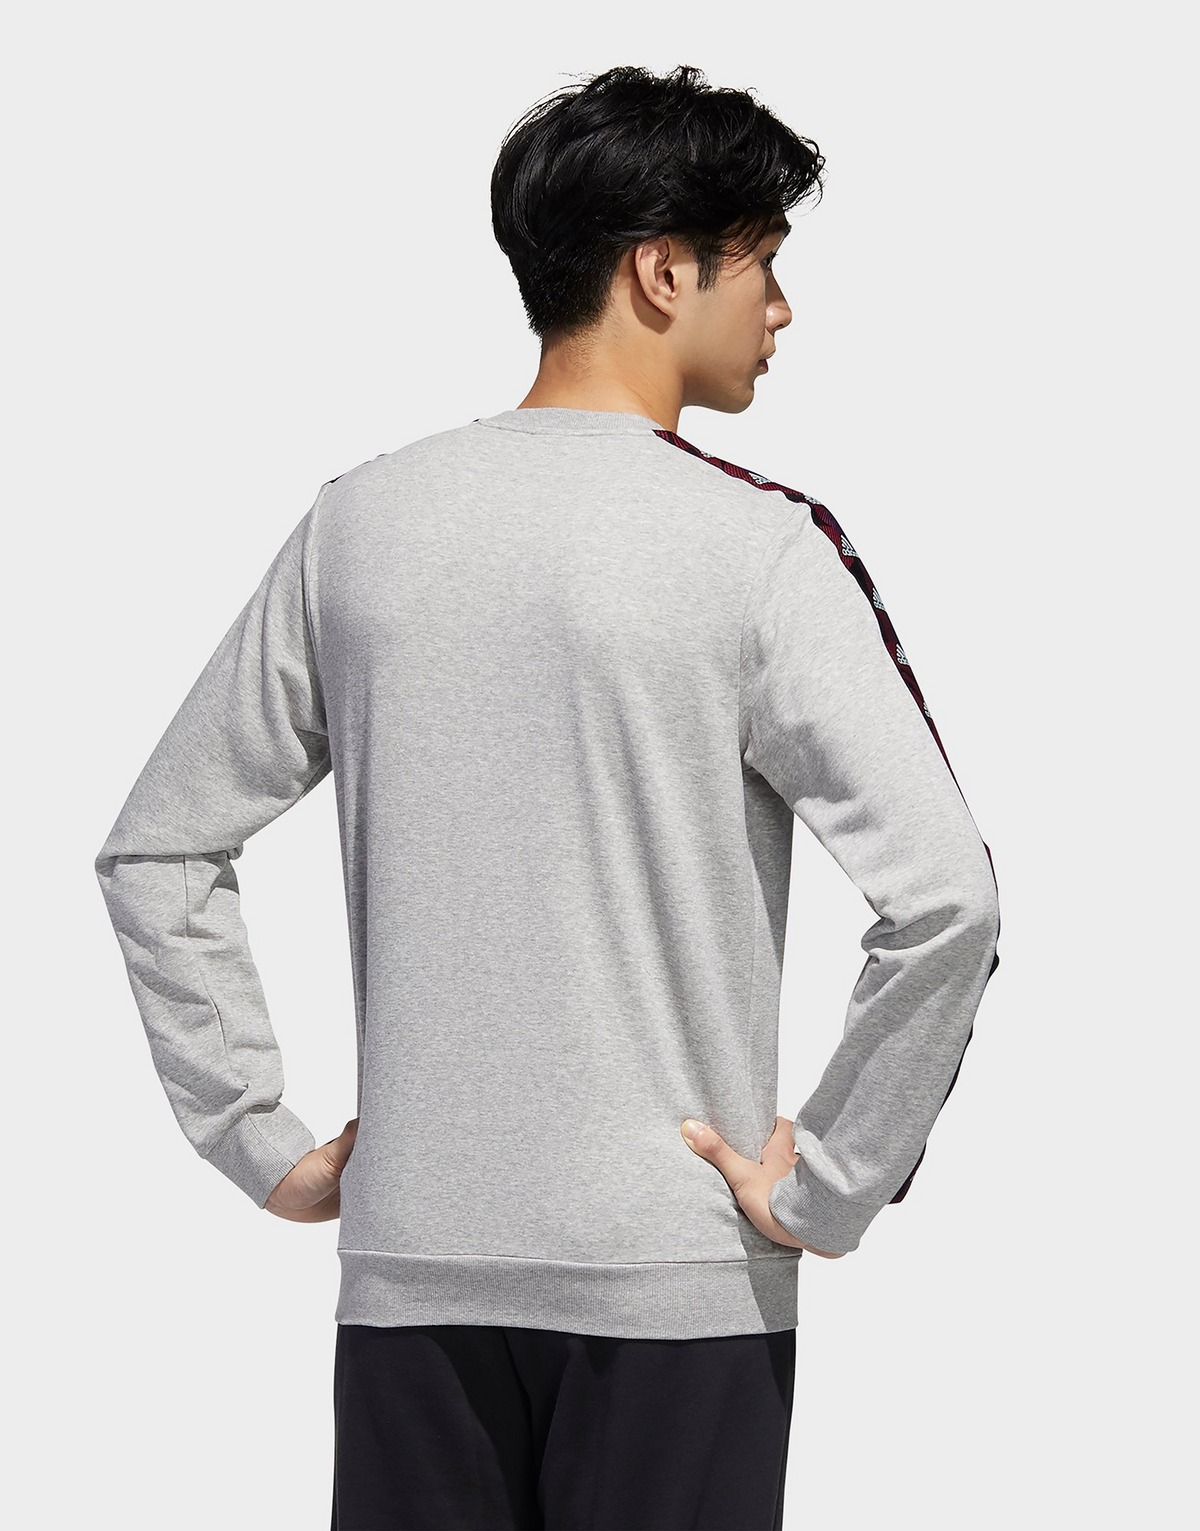 Adidas Performance Essentials Tape Sweatshirt